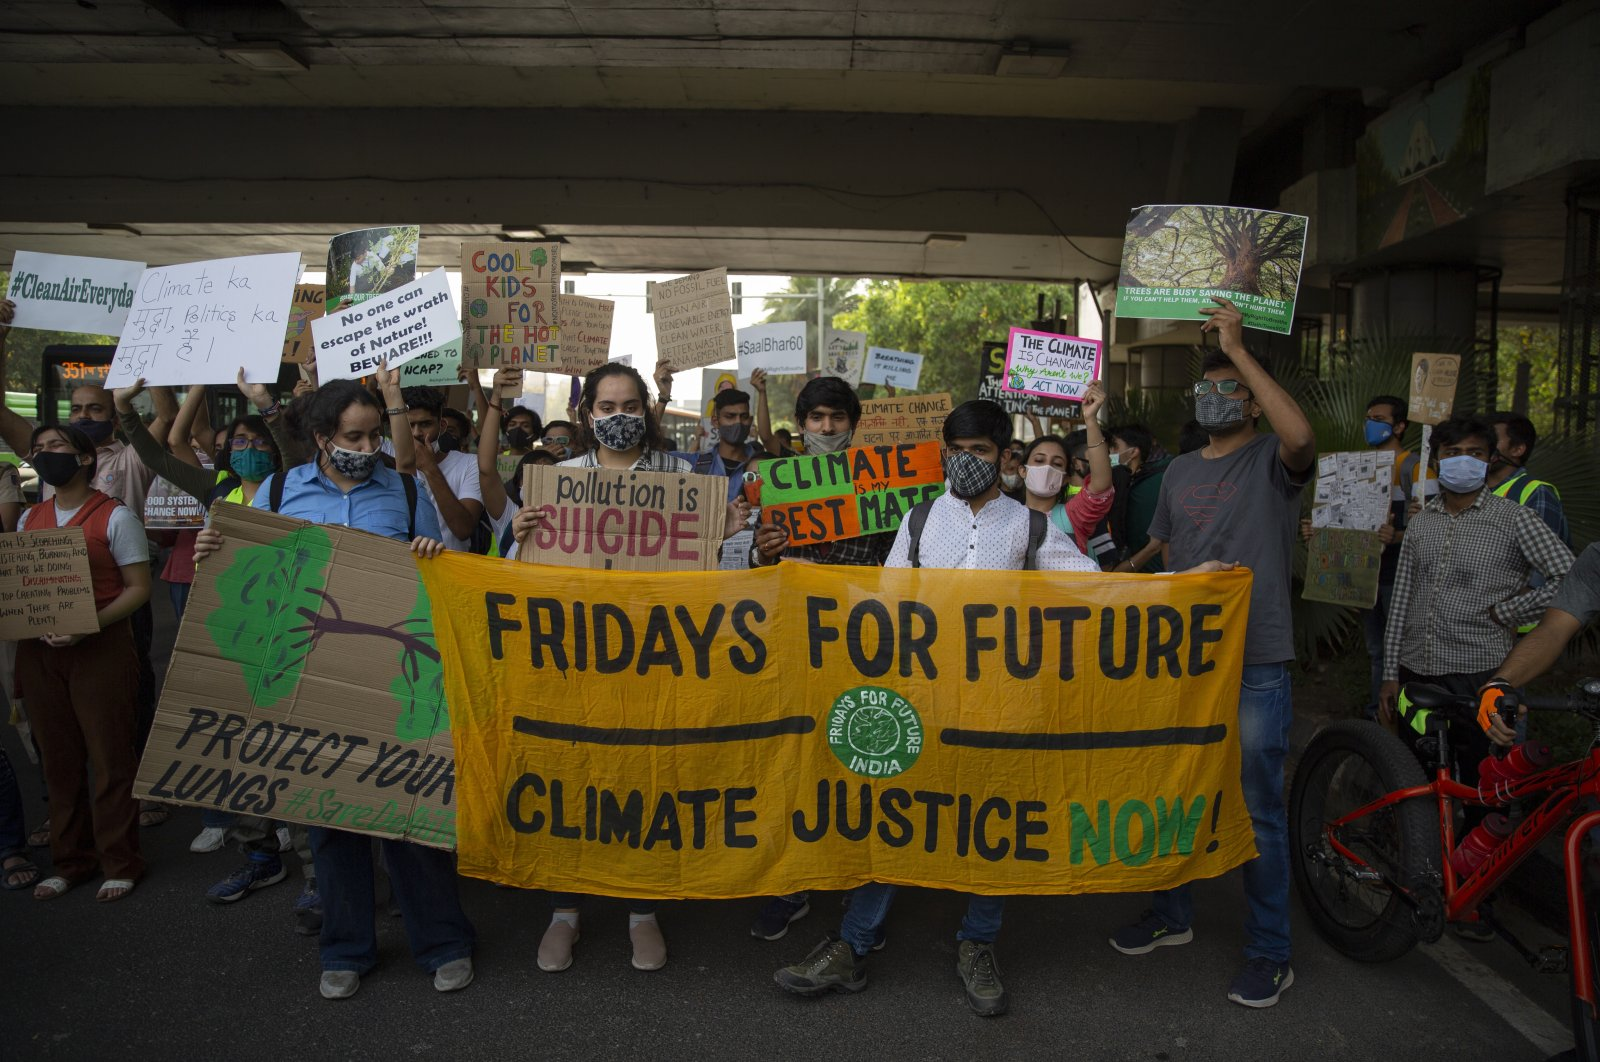 Student activists carry posters and shout slogans as they participate in a protest march against climate change in New Delhi, India, March 19, 2021. (AP Photo)